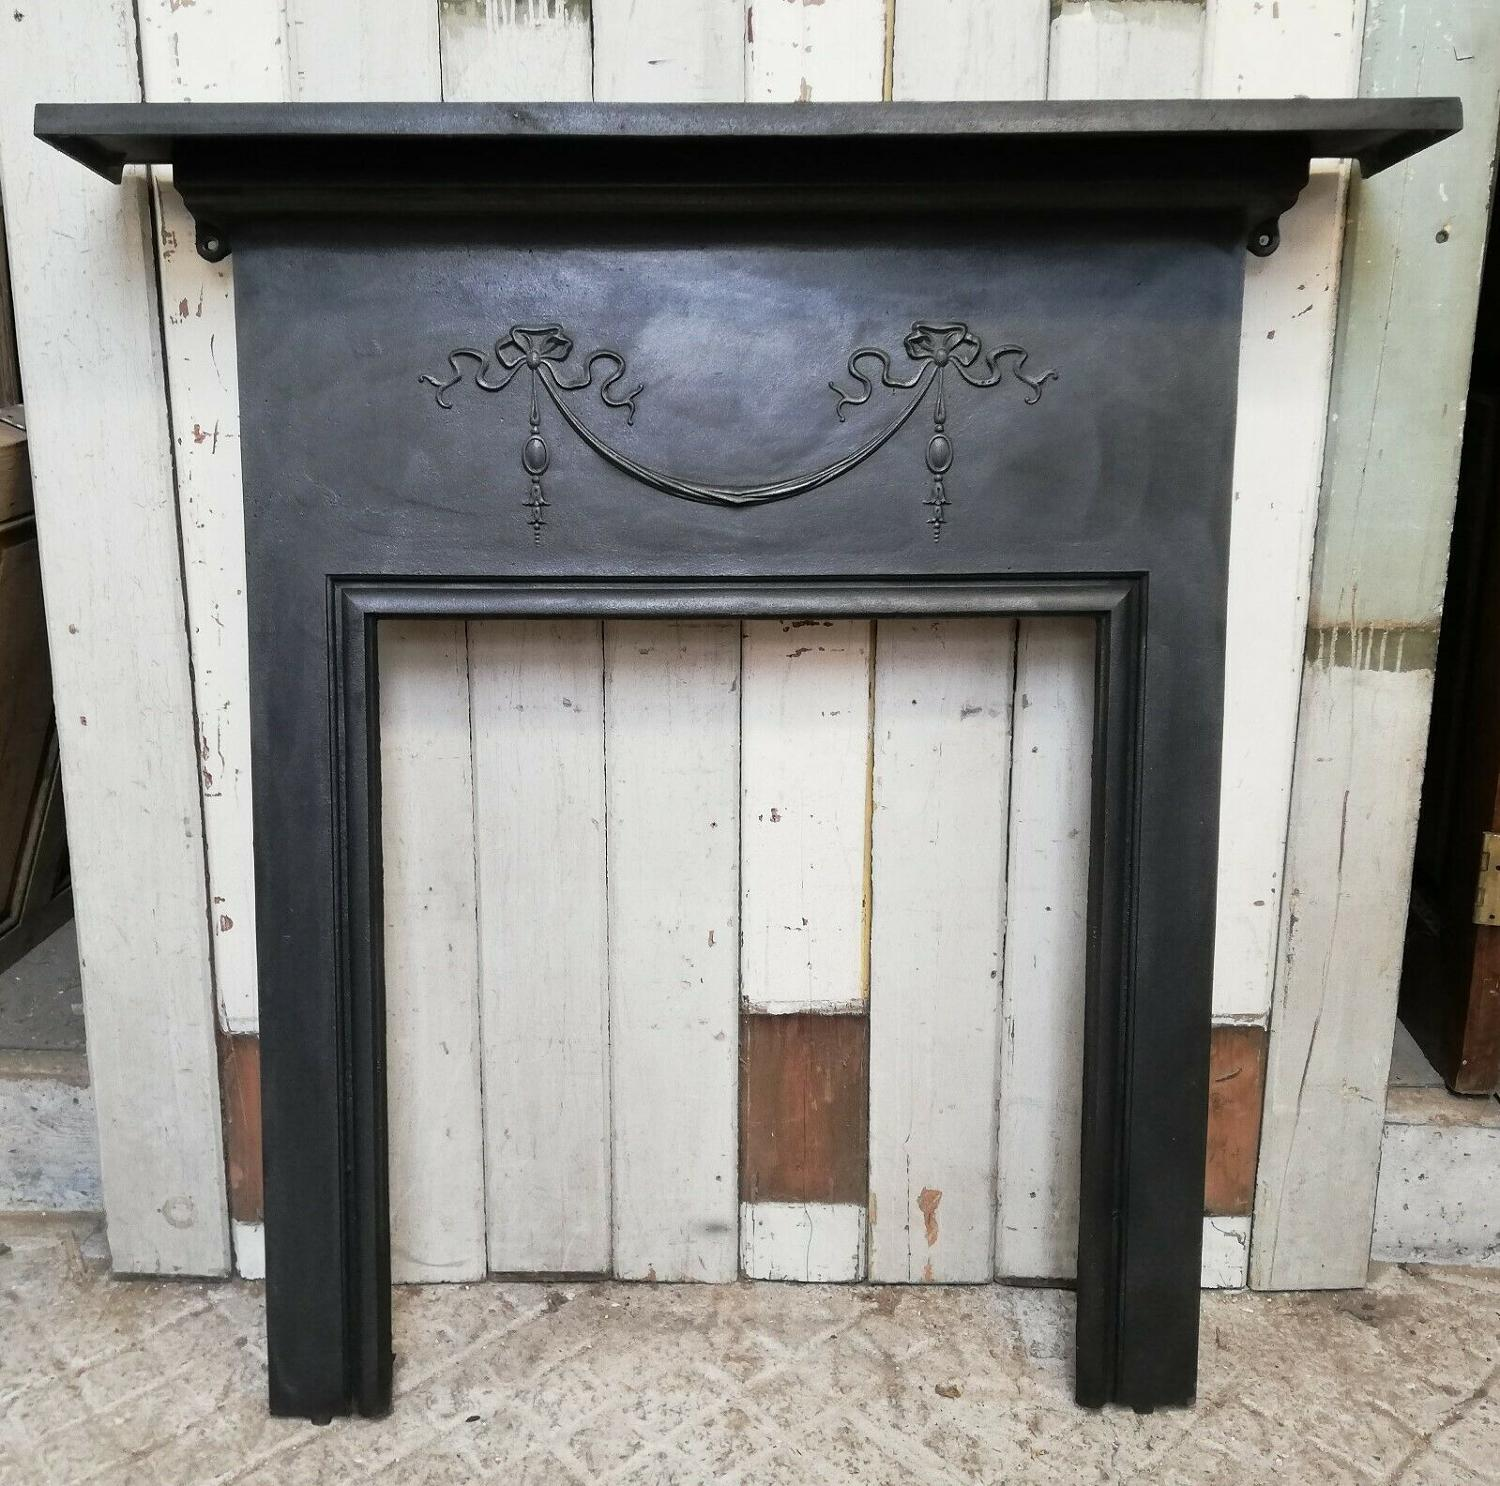 FS0075 ELEGANT VICTORIAN CAST IRON FIRE SURROUND FOR WOOD BURNER